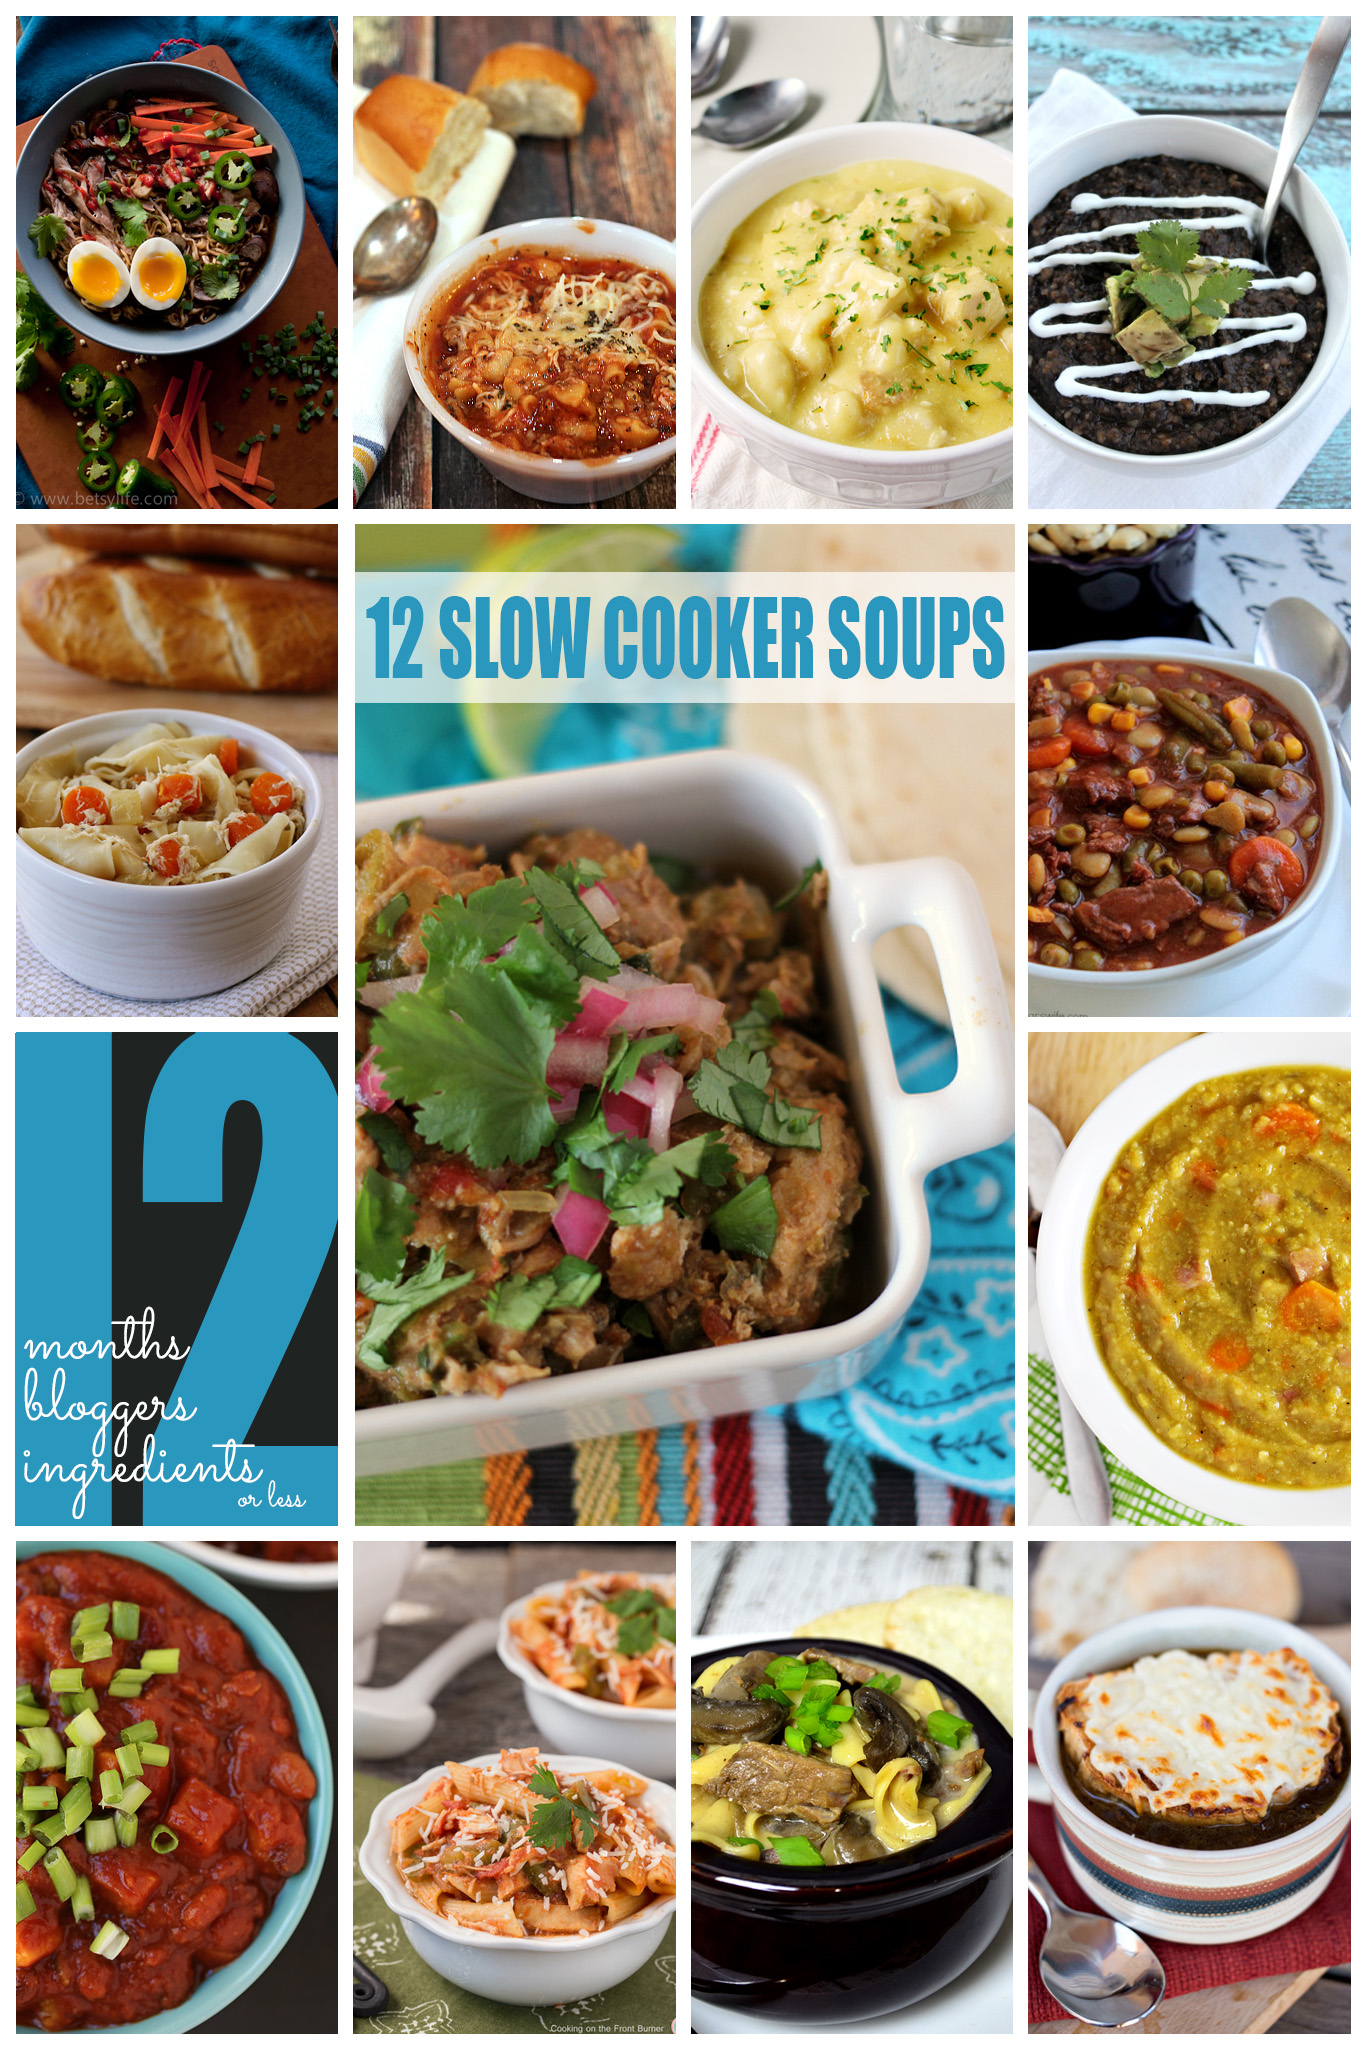 12 Slow Cooker Soups by #12Bloggers